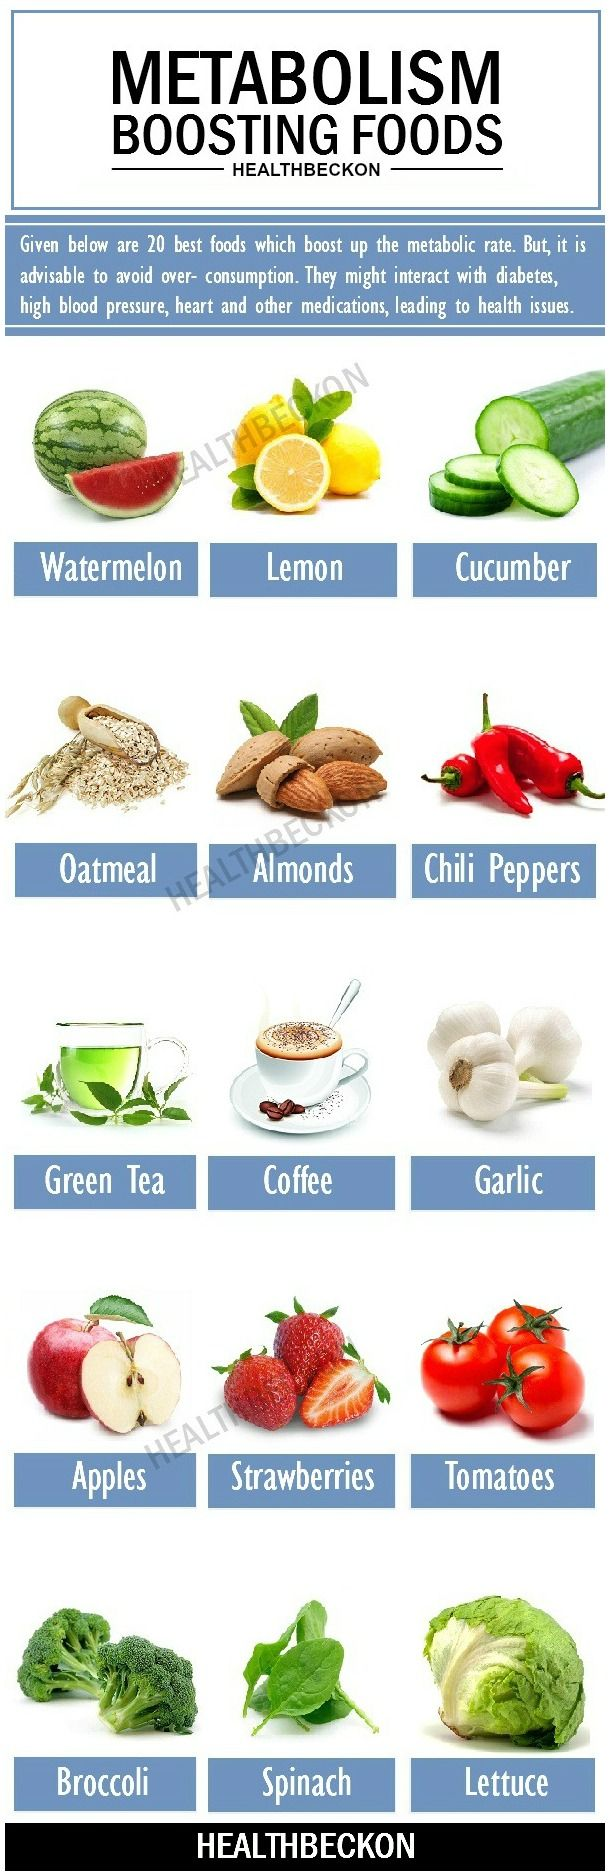 Given below are twenty foods which boost up the metabolic rate. But, it is advisable to avoid over- consumption. They might interact with diabetes, high blood pressure, heart and other medications, leading to health issues.